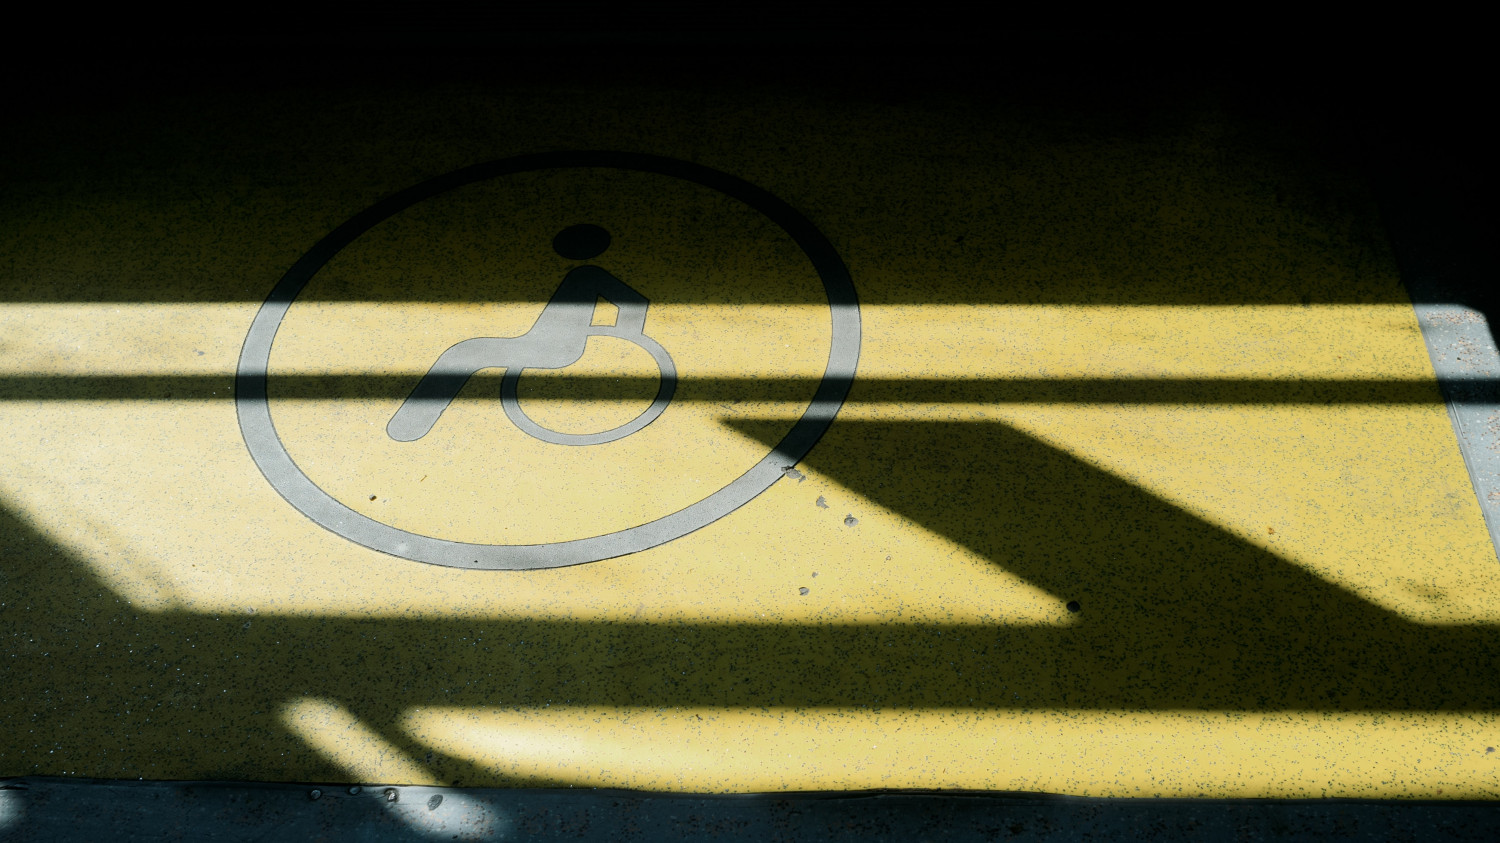 Image of a disability sign painted on a concrete floor